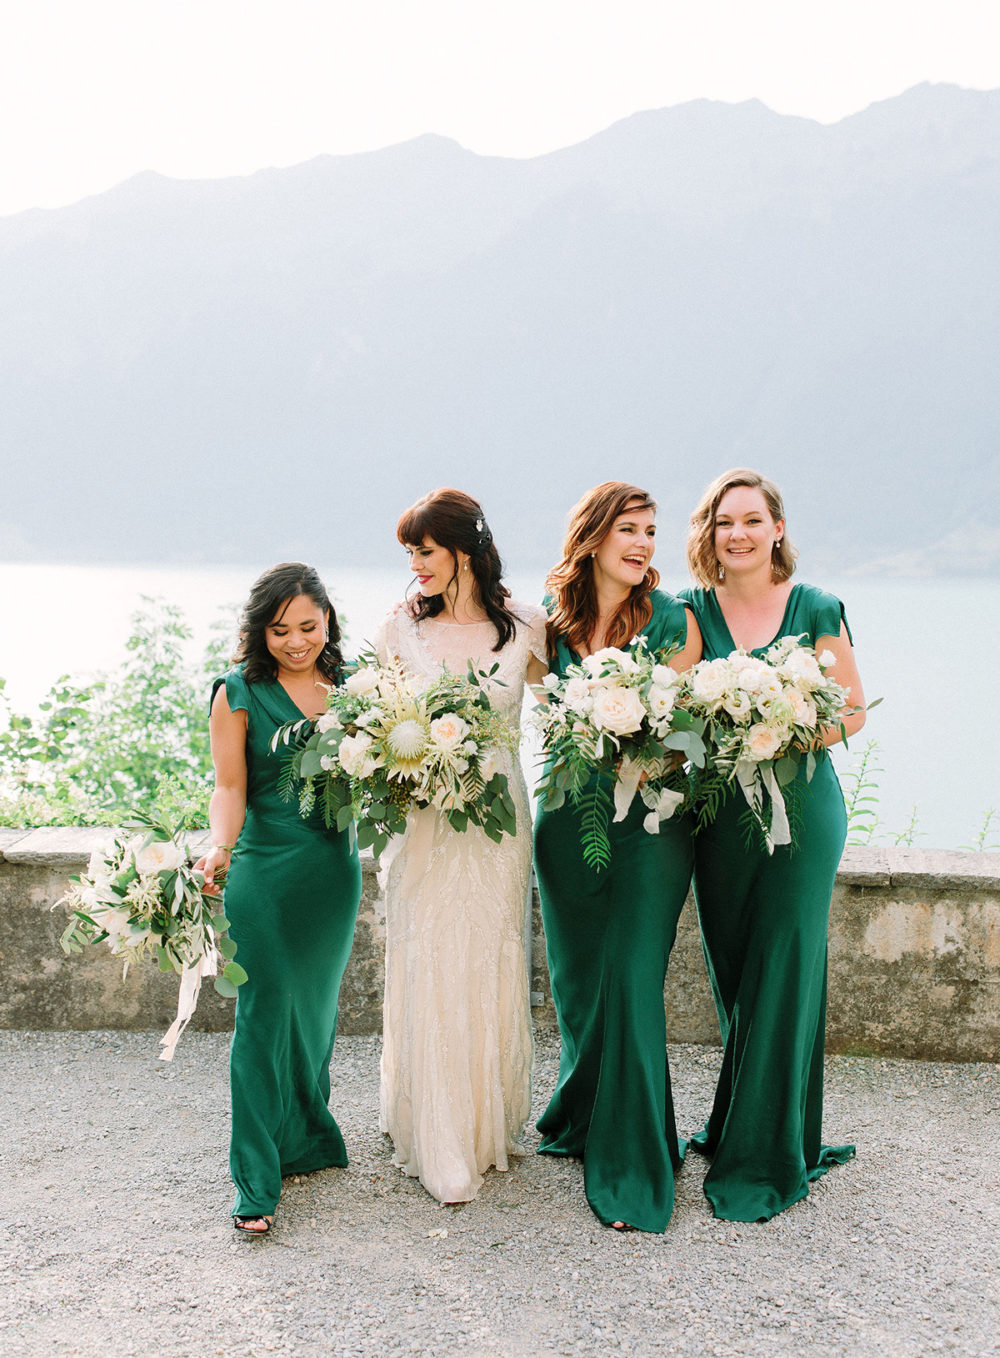 TML Tabea Maria-Lisa Floral Designer Swiss Wedding Florist Portfolio Bridesmaids Destination Wedding Grandhotel Giessbach